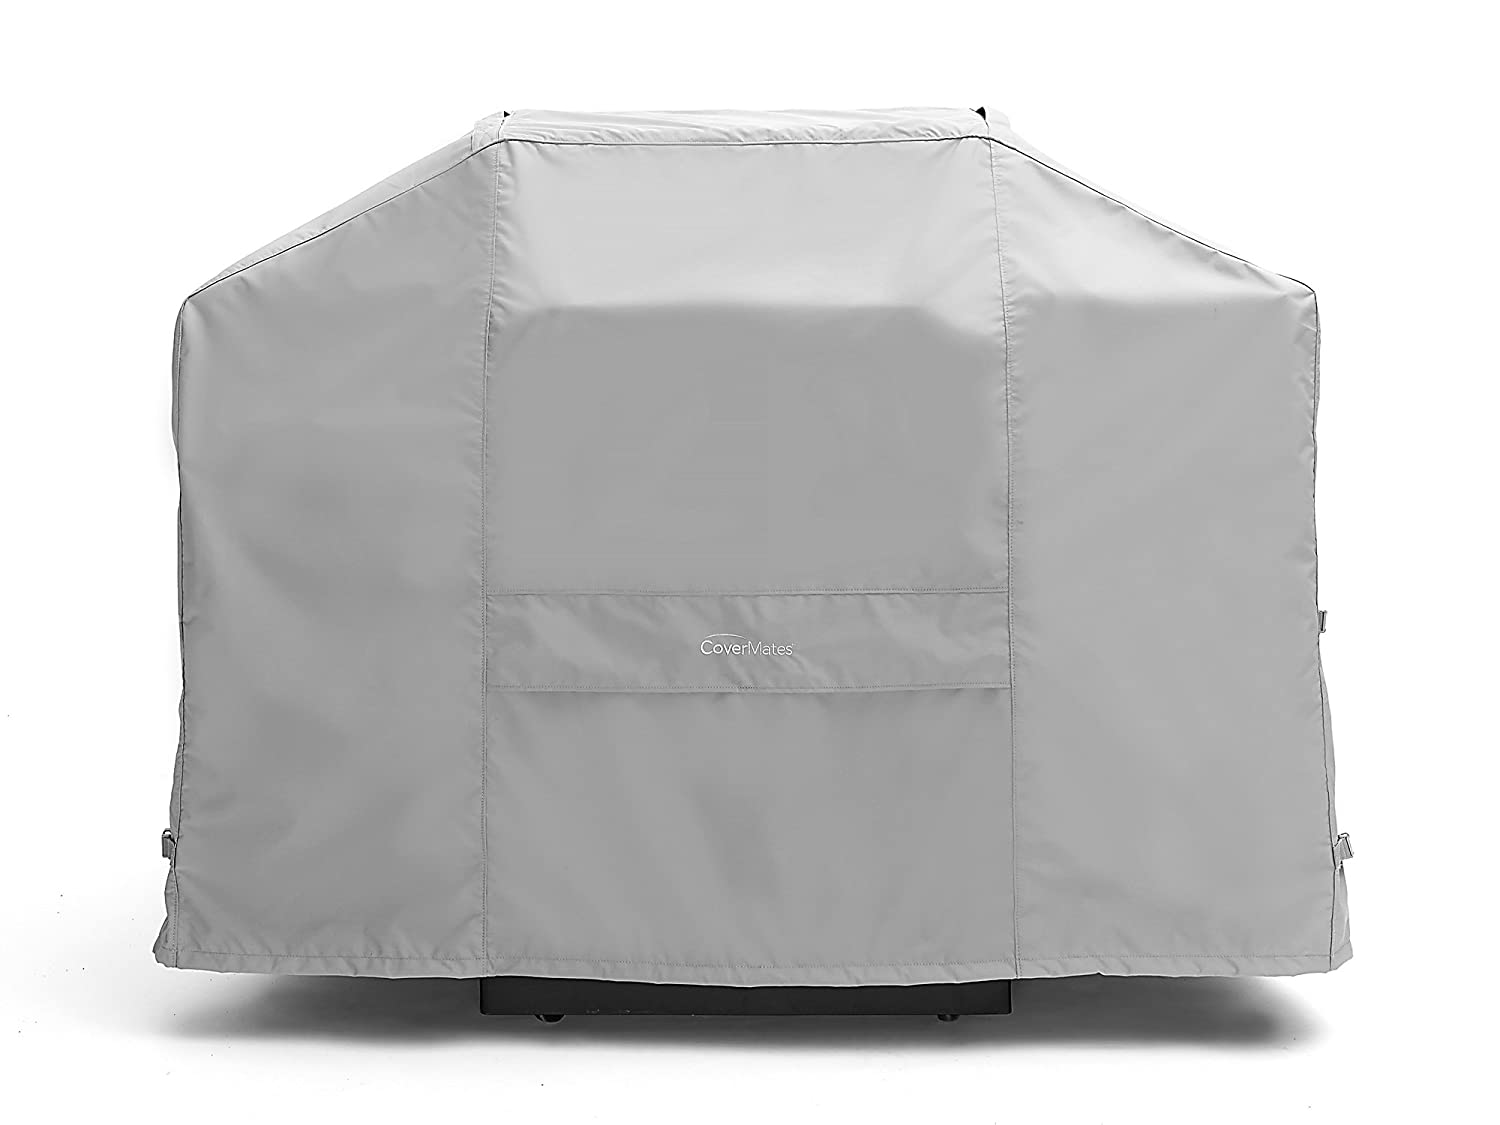 covermates patio furniture covers. Amazon.com : CoverMates - Grill Cover 53W X 24D 44H Ultima Collection 7 YR Warranty Year Around Protection Grey Outdoor Covers Garden Covermates Patio Furniture E